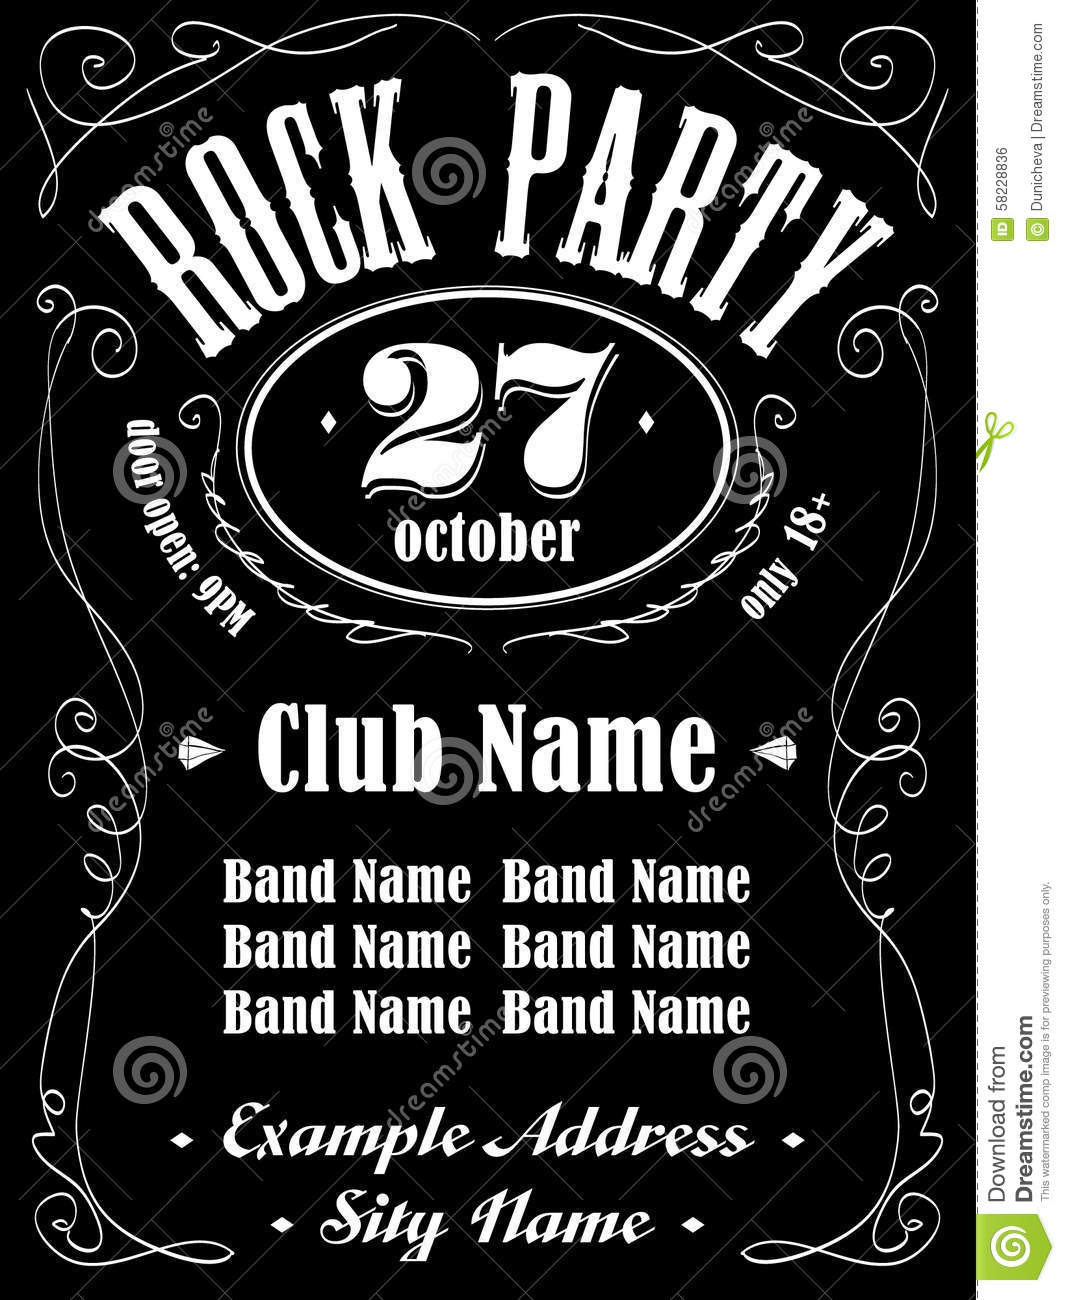 Rock Event Poster Or Flyer Template. Stock Vector - Illustration of ...